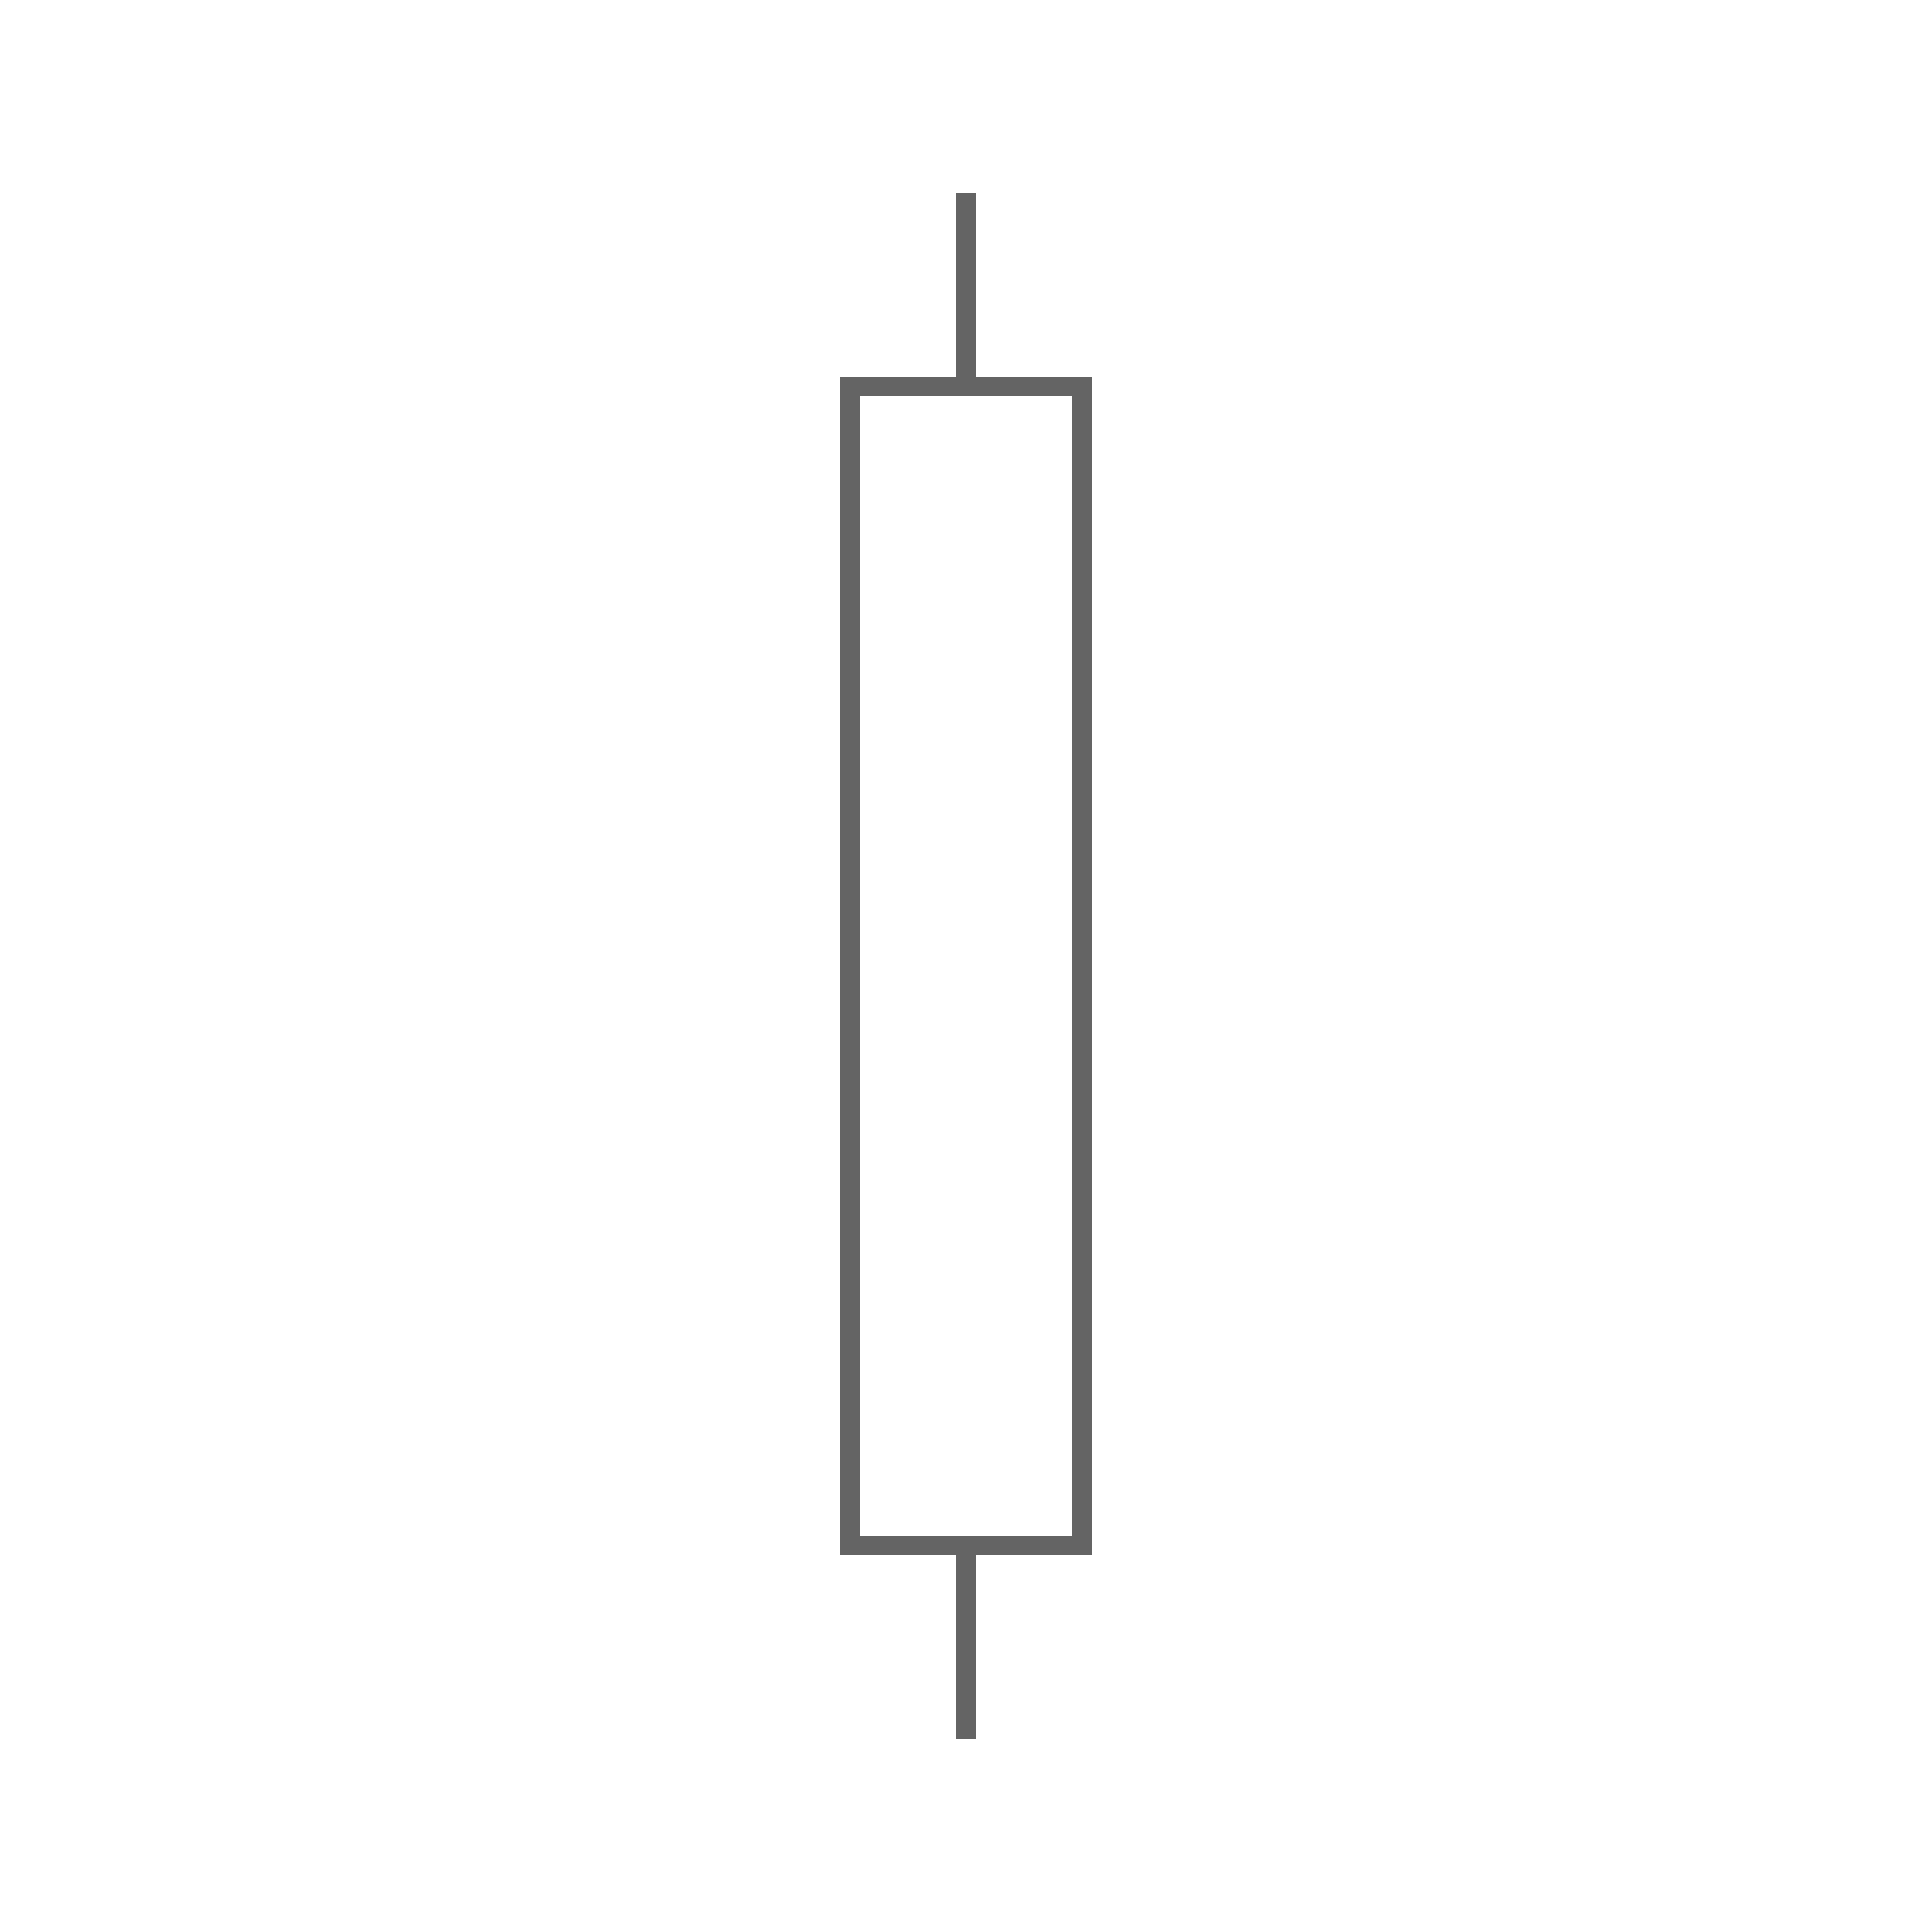 Candle svg #3, Download drawings